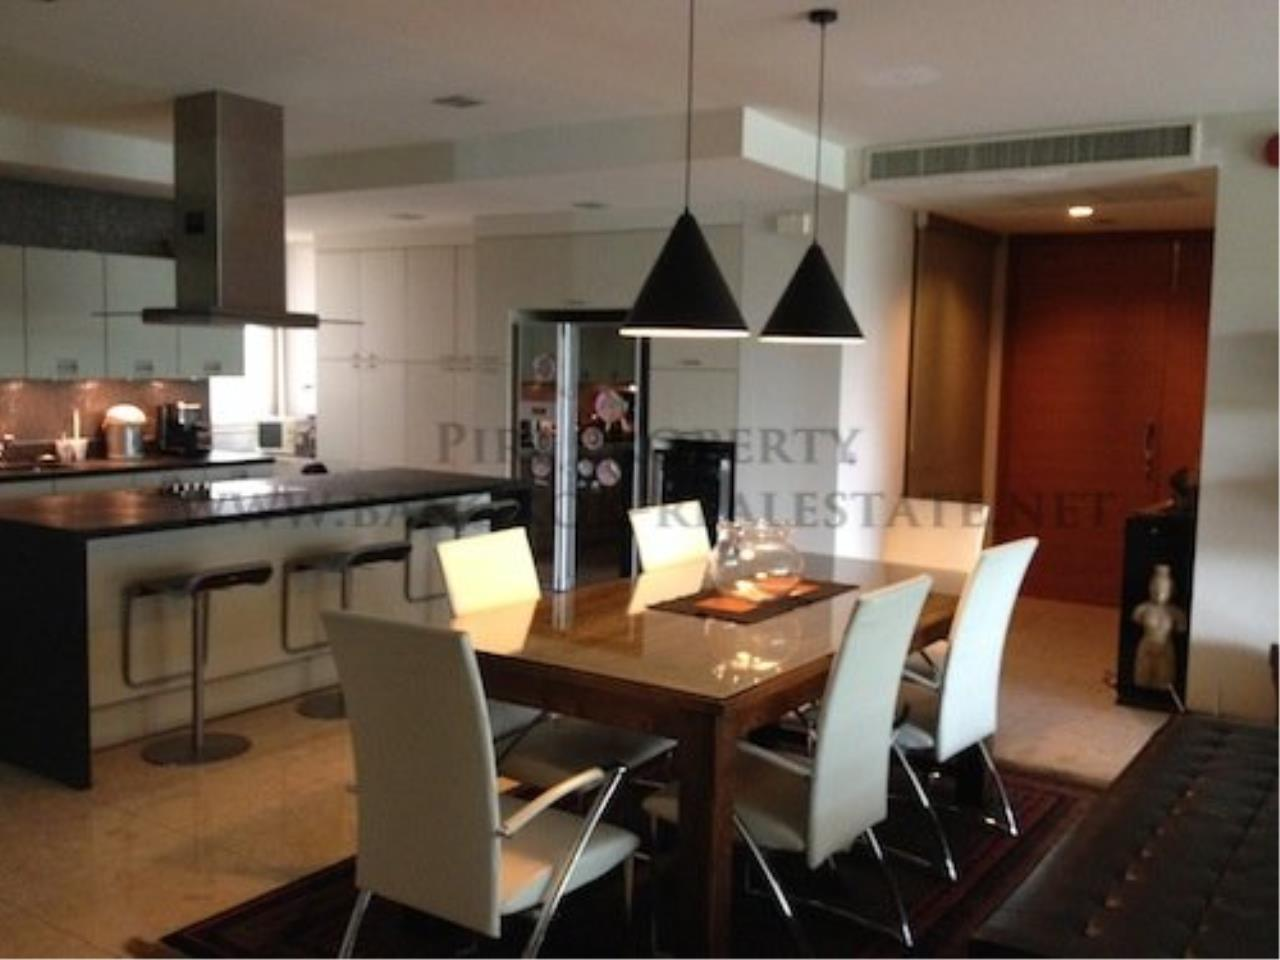 Piri Property Agency's Ficus Lane Condo - Nice 3 Bedroom Condo with 200 SQM in the Green 6